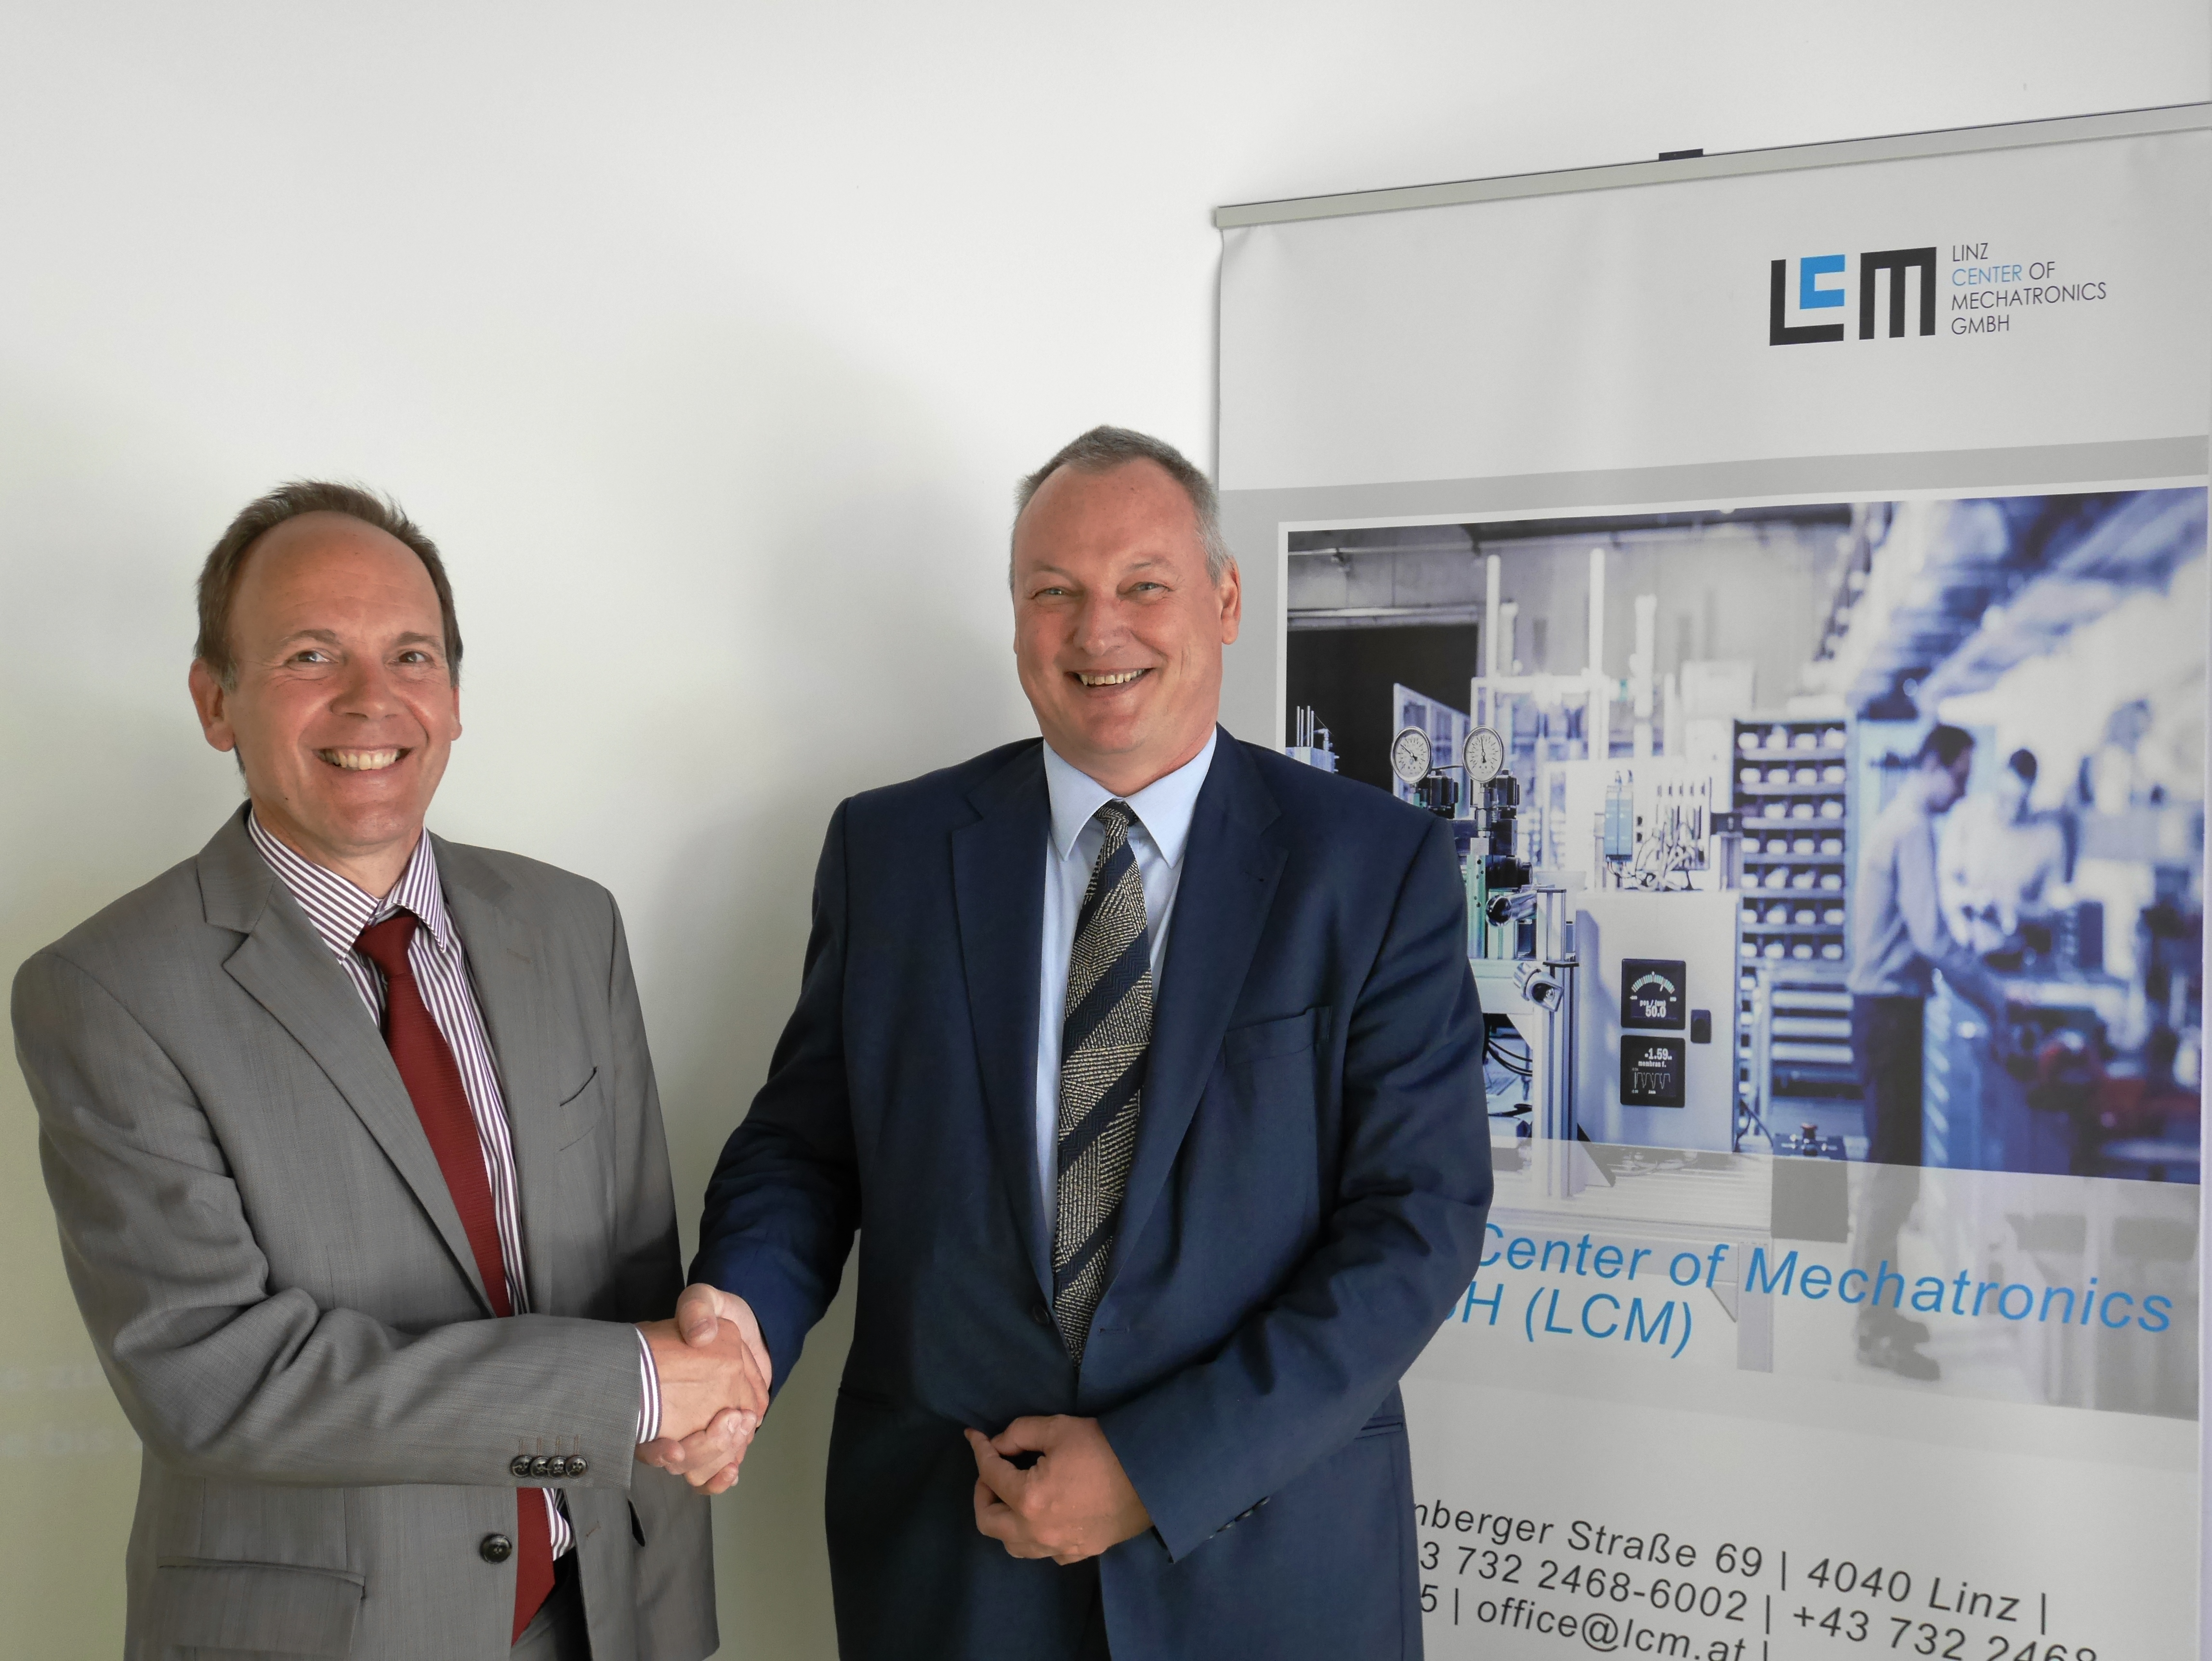 Belgian embassy visited the Linz Center of Mechatronics GmbH